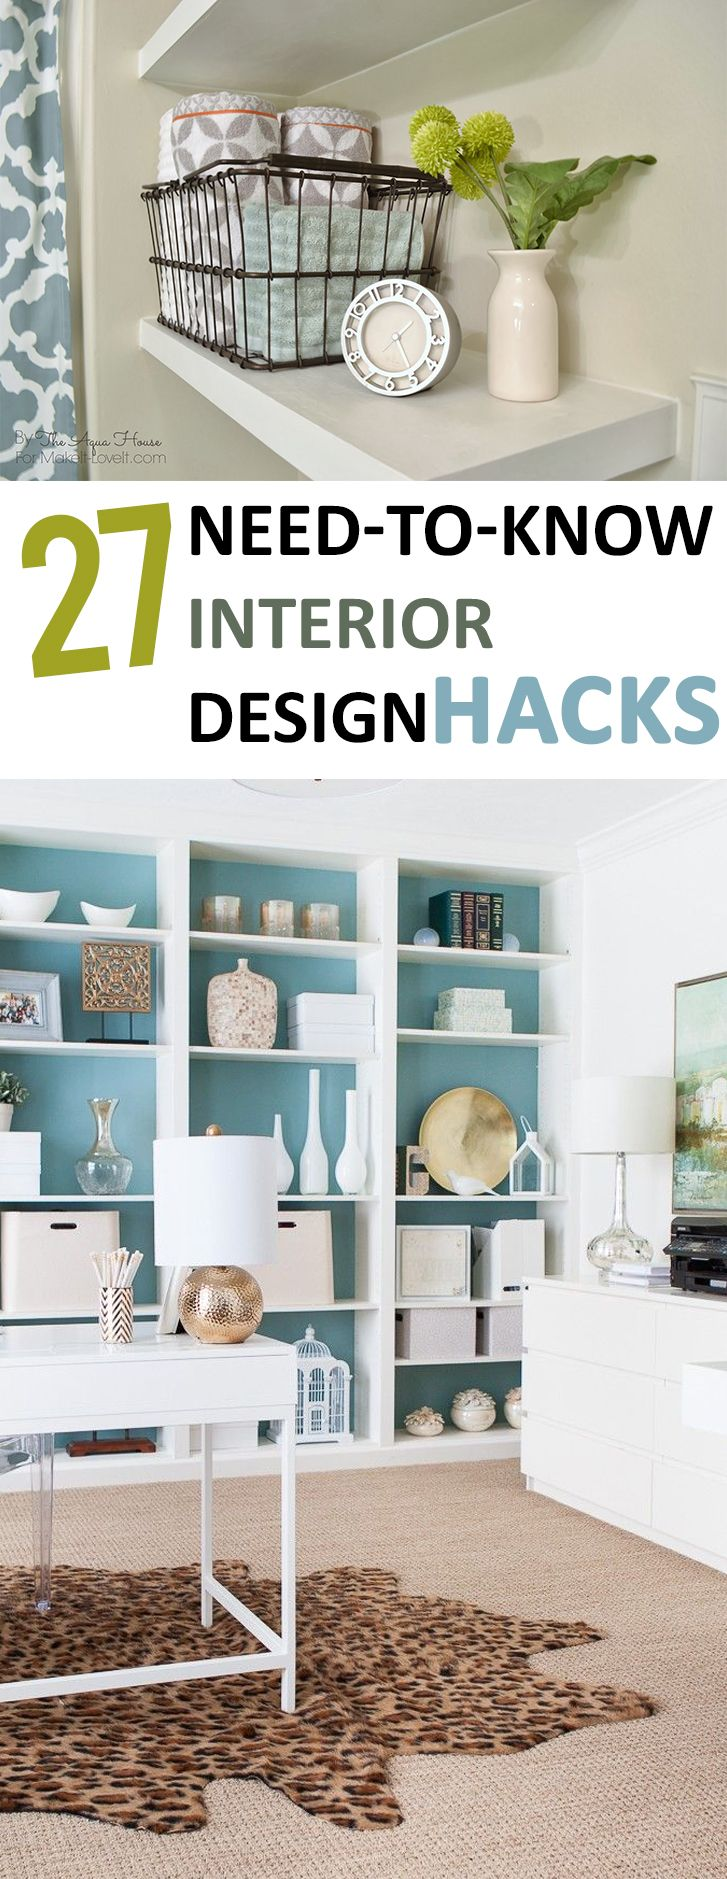 27 need to know interior design hacks - Home Design Tips